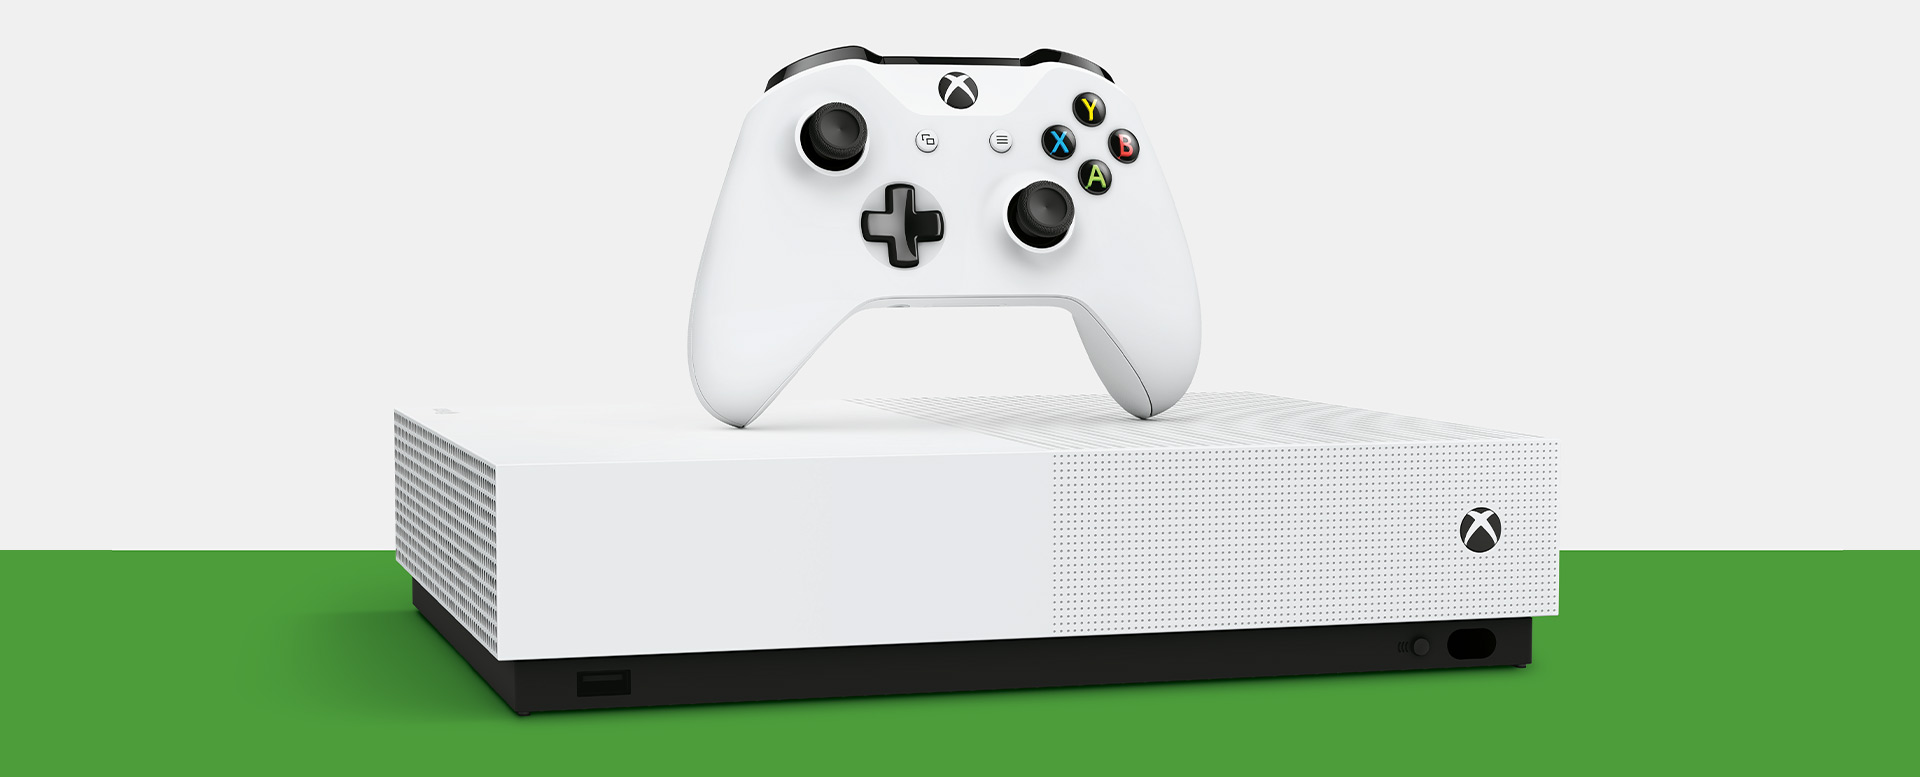 GAME and GameStop shrug off Xbox One S All-Digital Edition threat